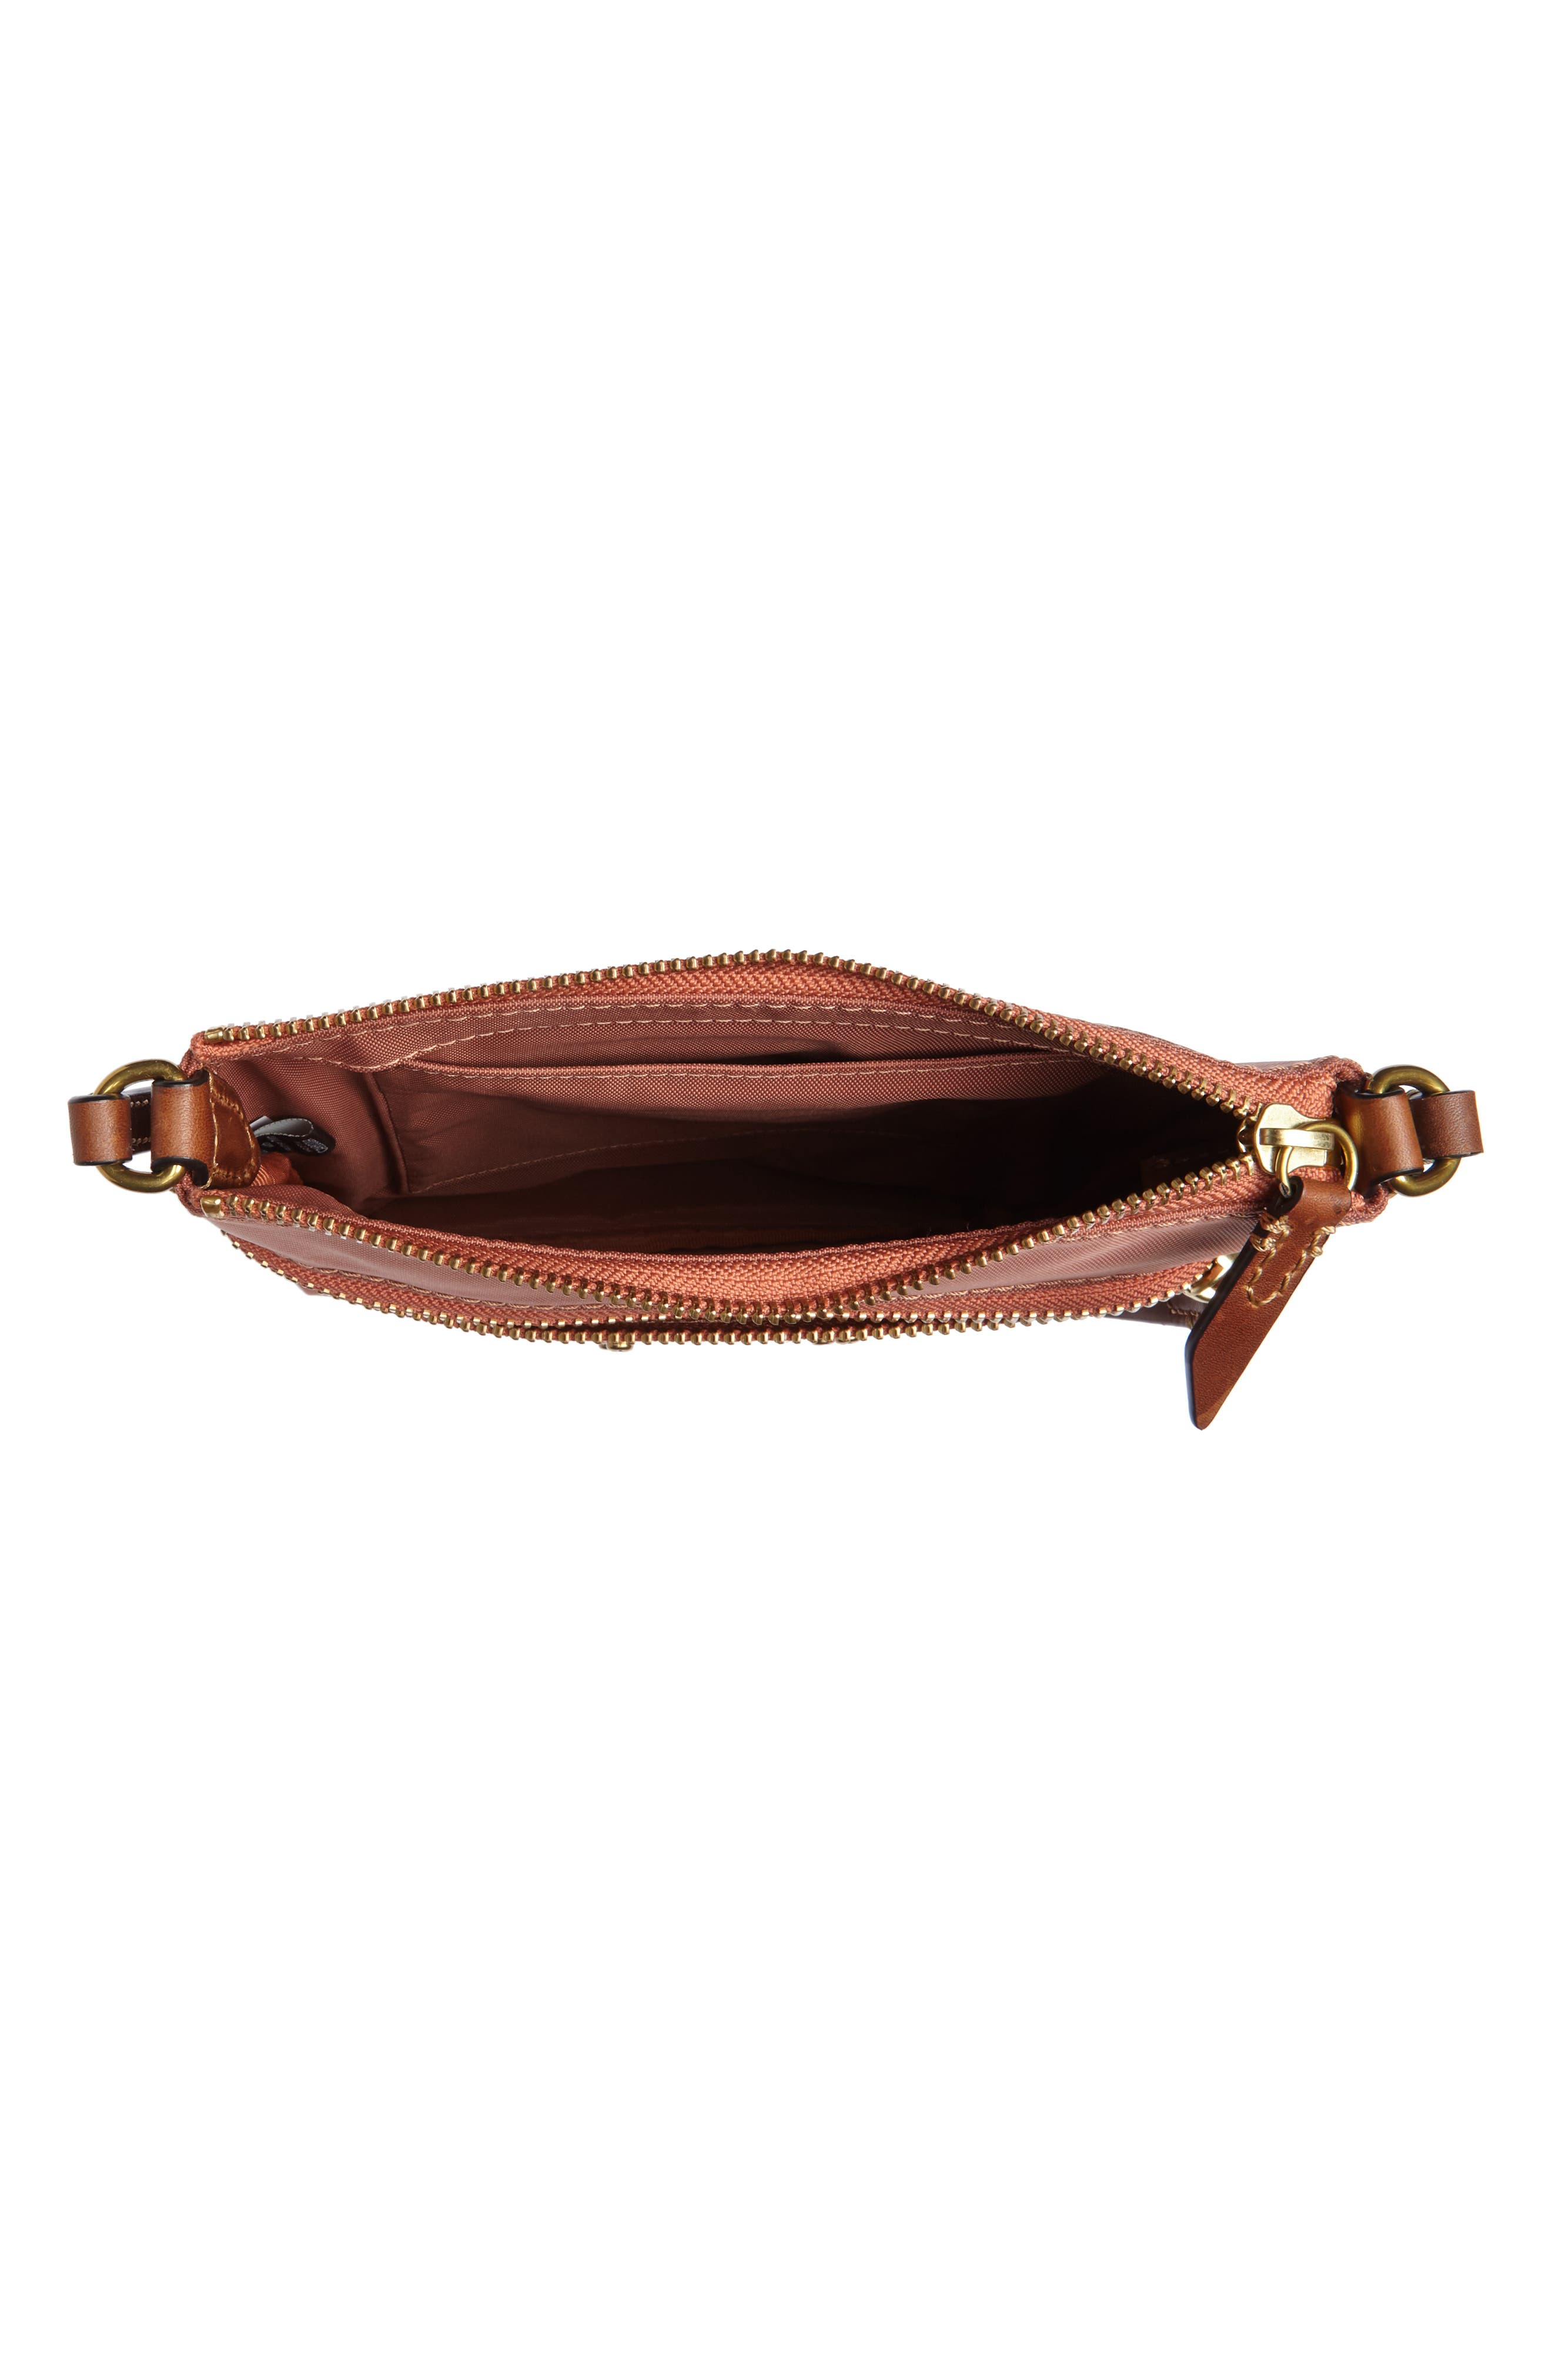 Ivy Nylon Cosmetics Bag,                             Alternate thumbnail 3, color,                             Dusty Rose